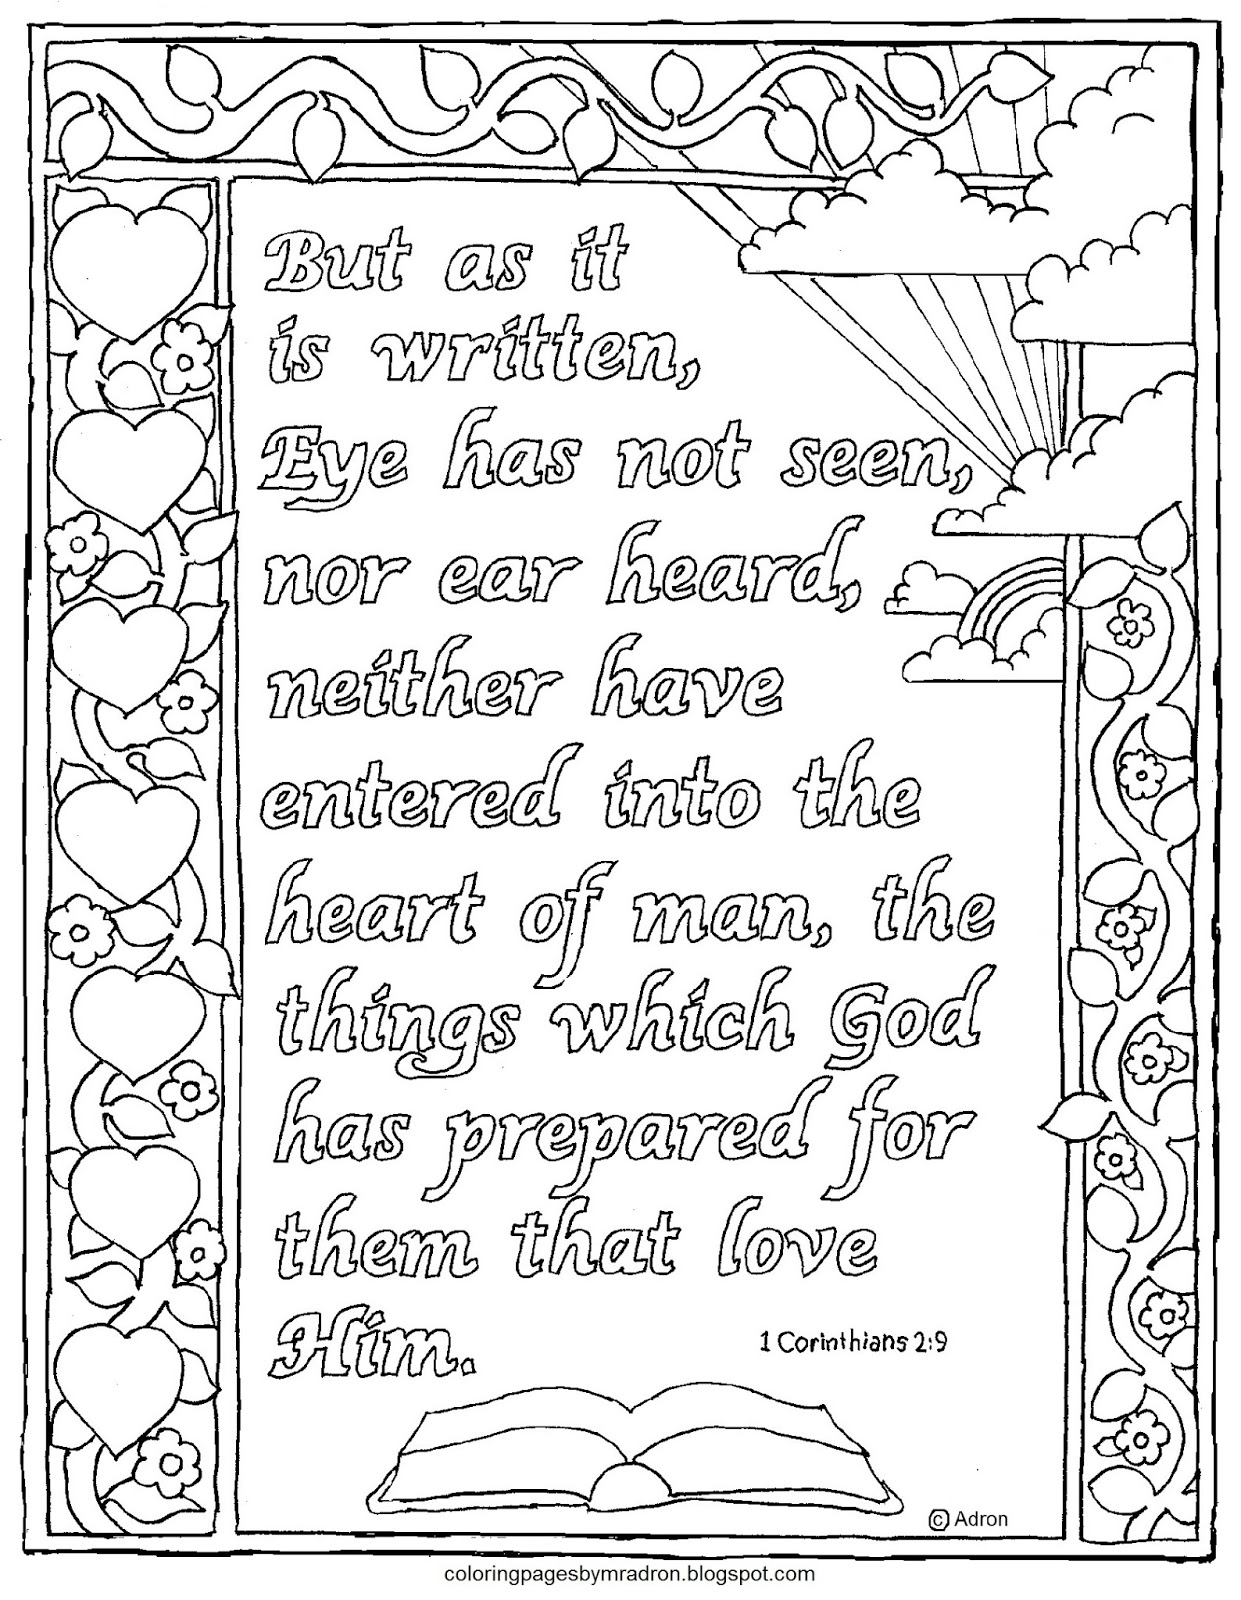 printable 1 corinthians 12 coloring pages coloring pages for kids by mr adron 1 corinithians 154 printable pages 1 corinthians coloring 12